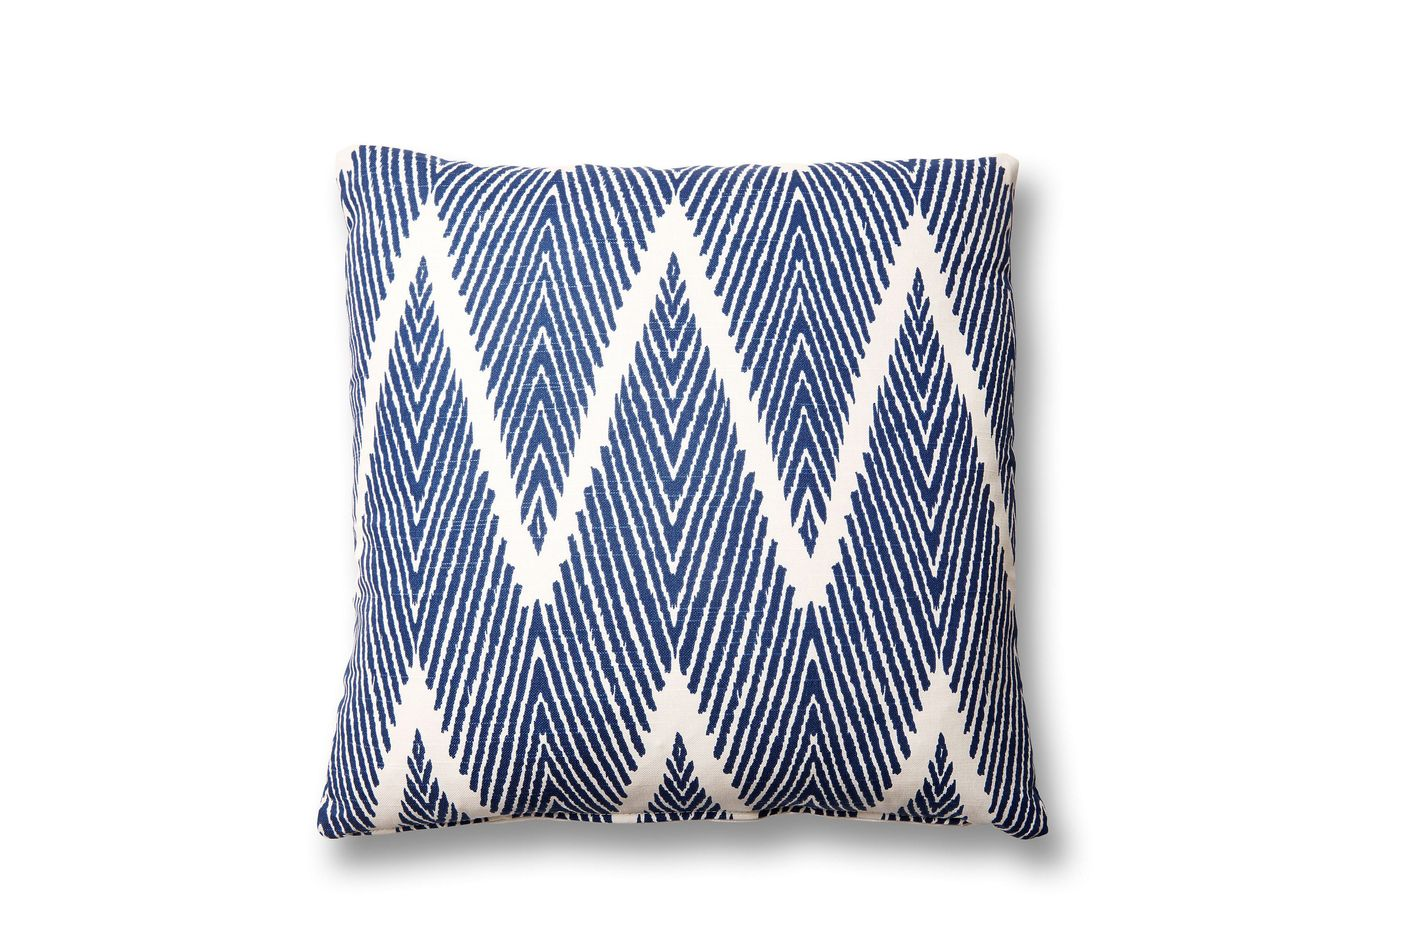 Kim Salmela Pillow